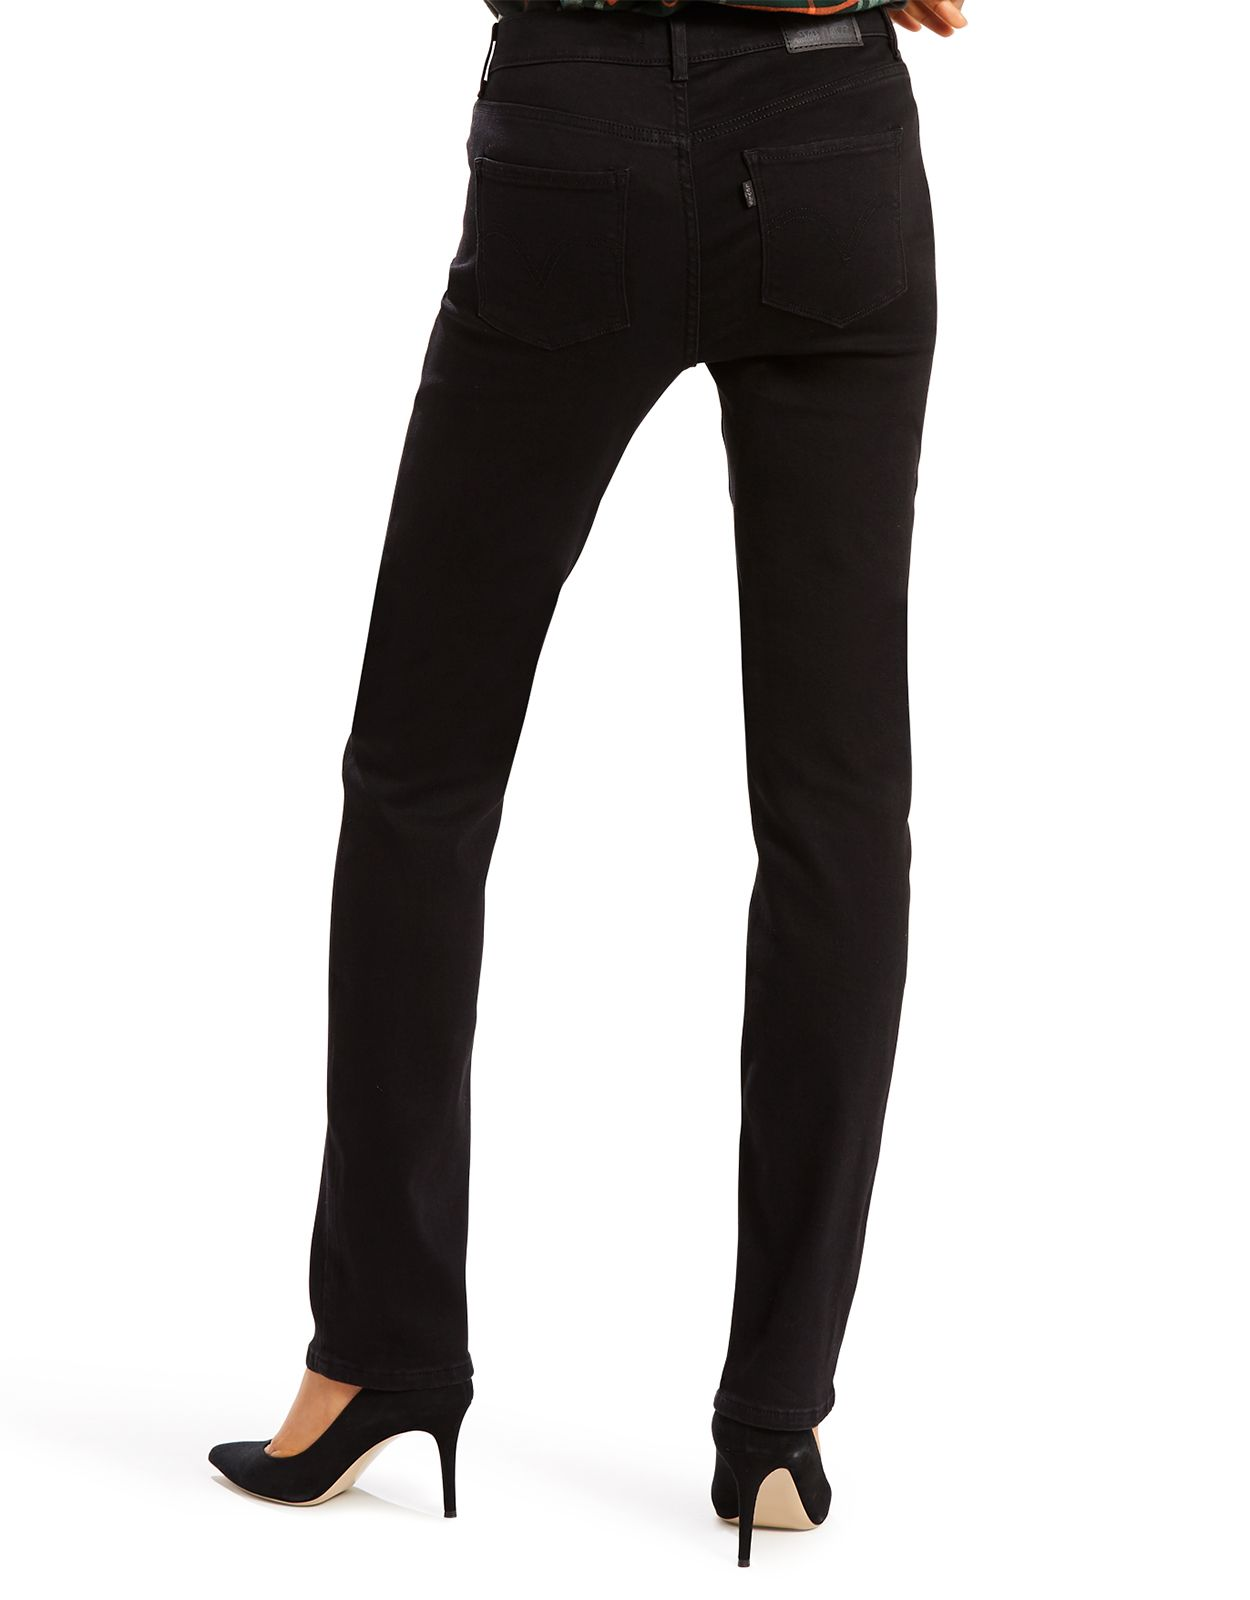 Levi's Women's Classic Straight Stretch Mid Rise Easy Fit Straight Leg Jeans - Soft Black